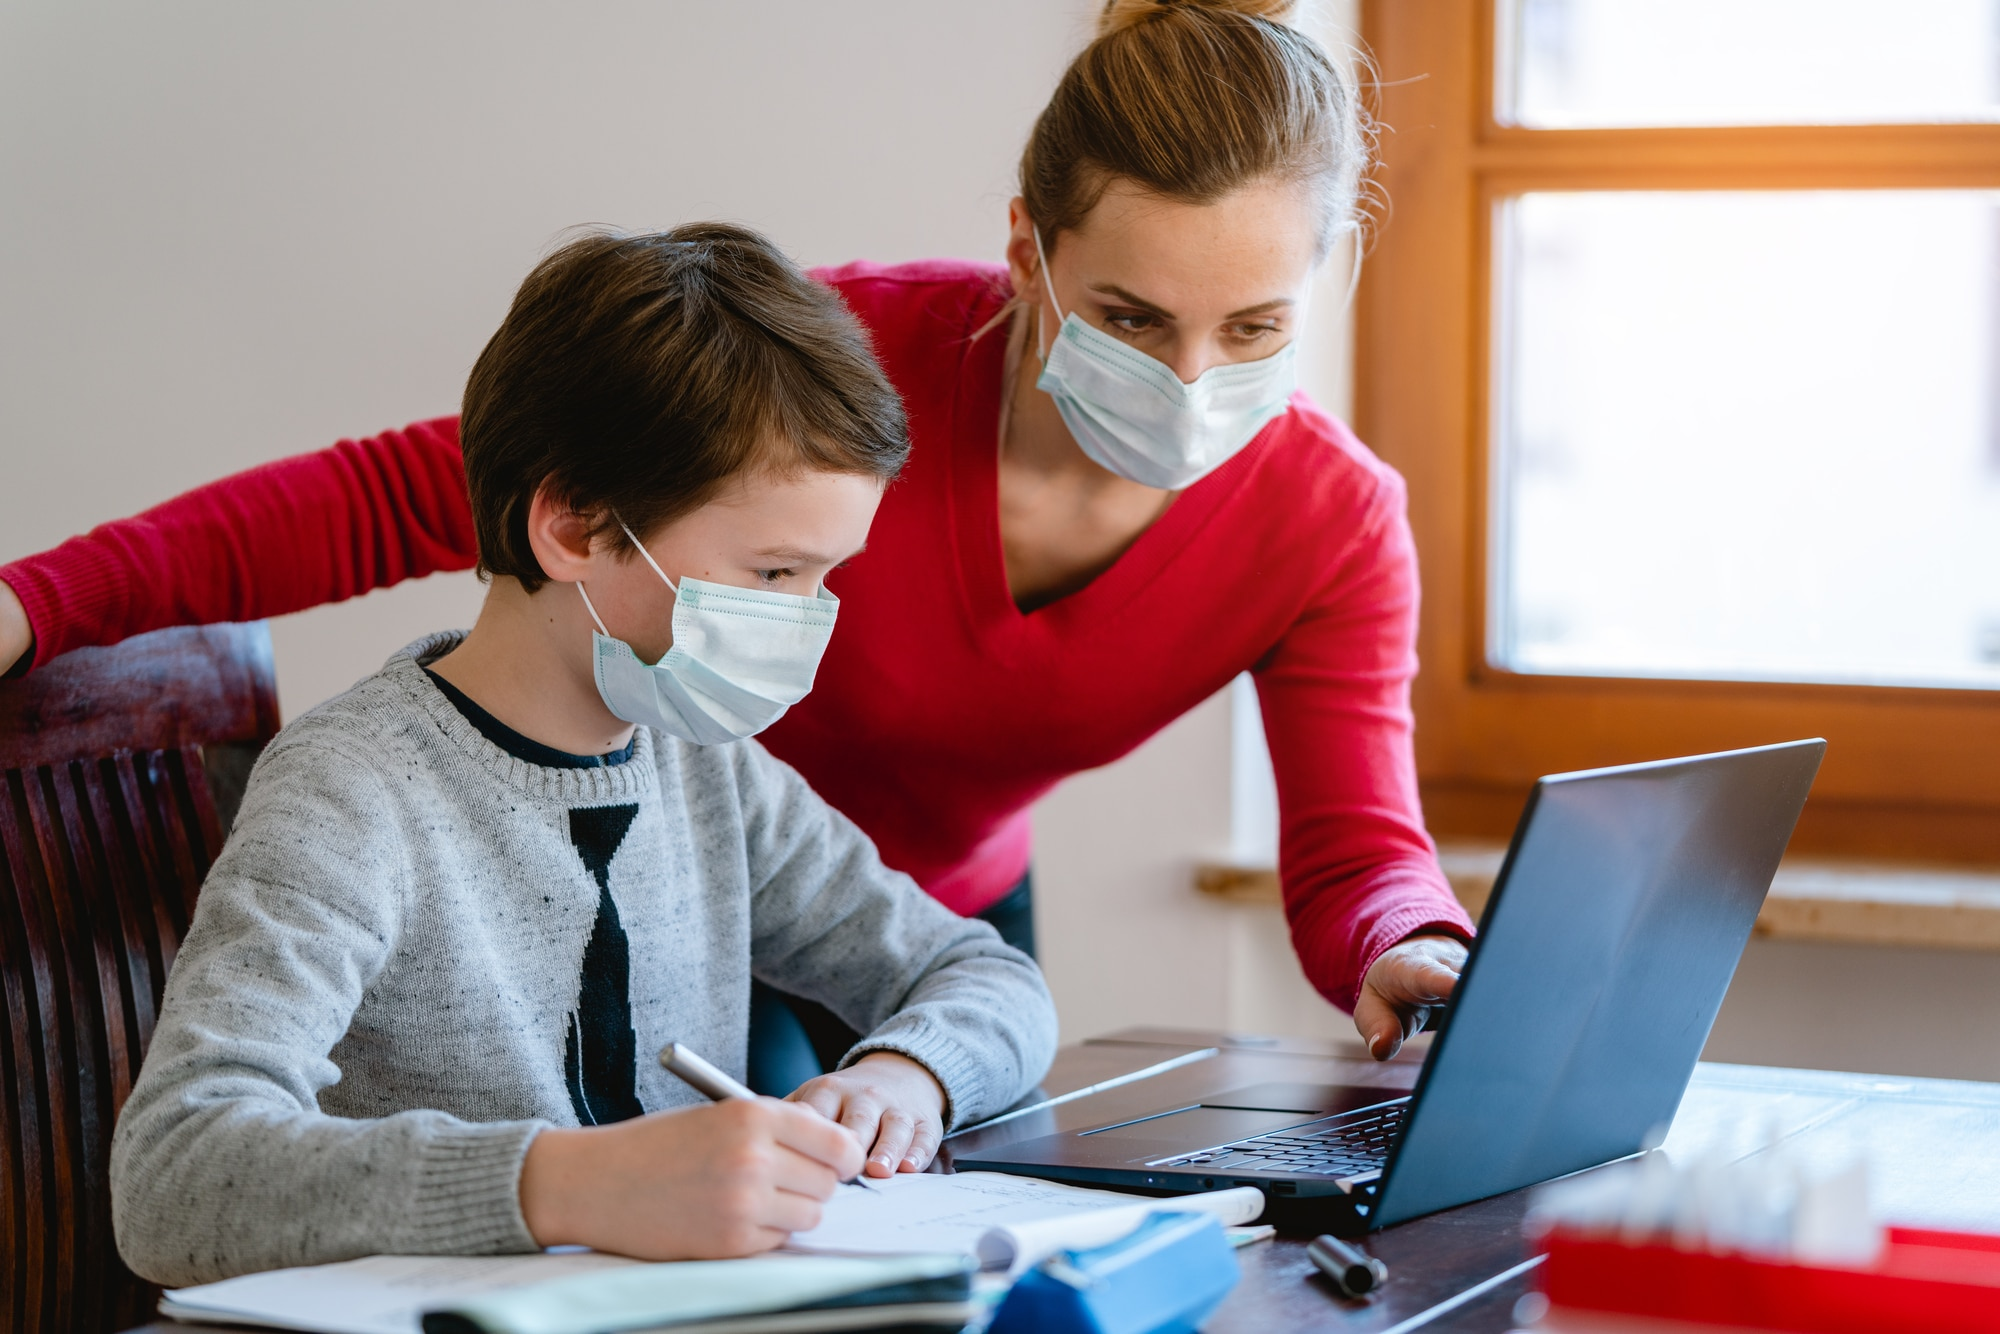 Student and teacher working together with masks on